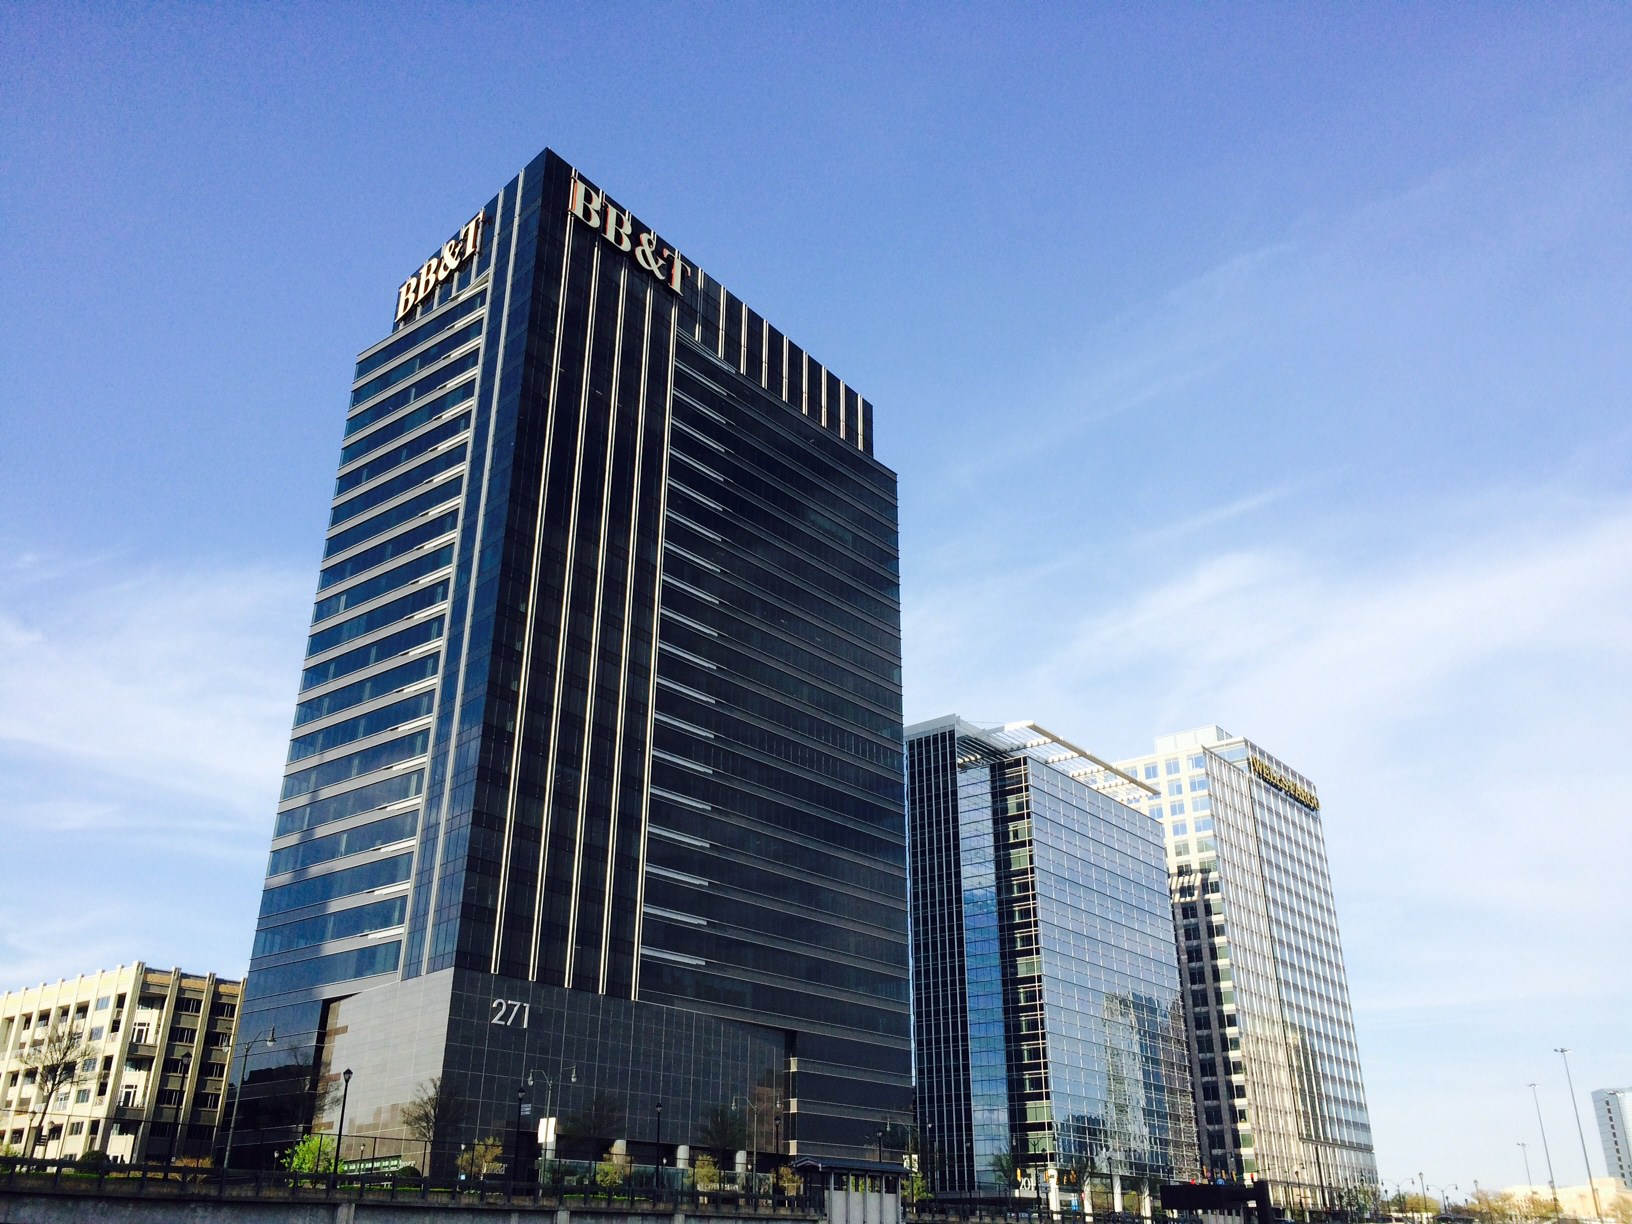 LED certified BB&T building in Atlantic Station